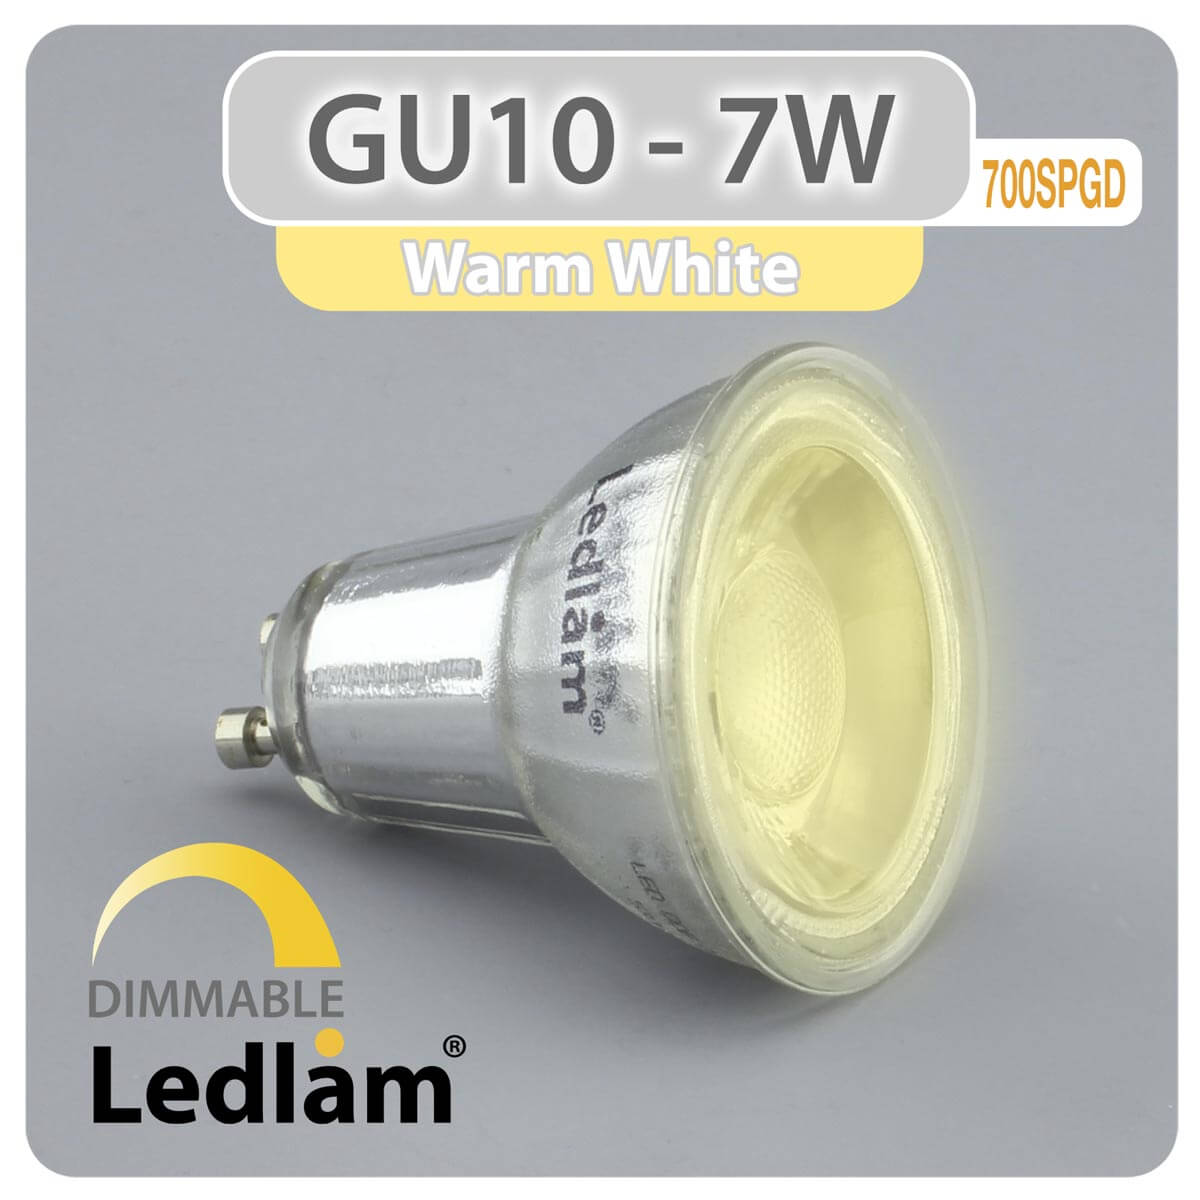 Led Spot Gu10 Gu10 Led Spot Light 7w 700spgd Dimmable